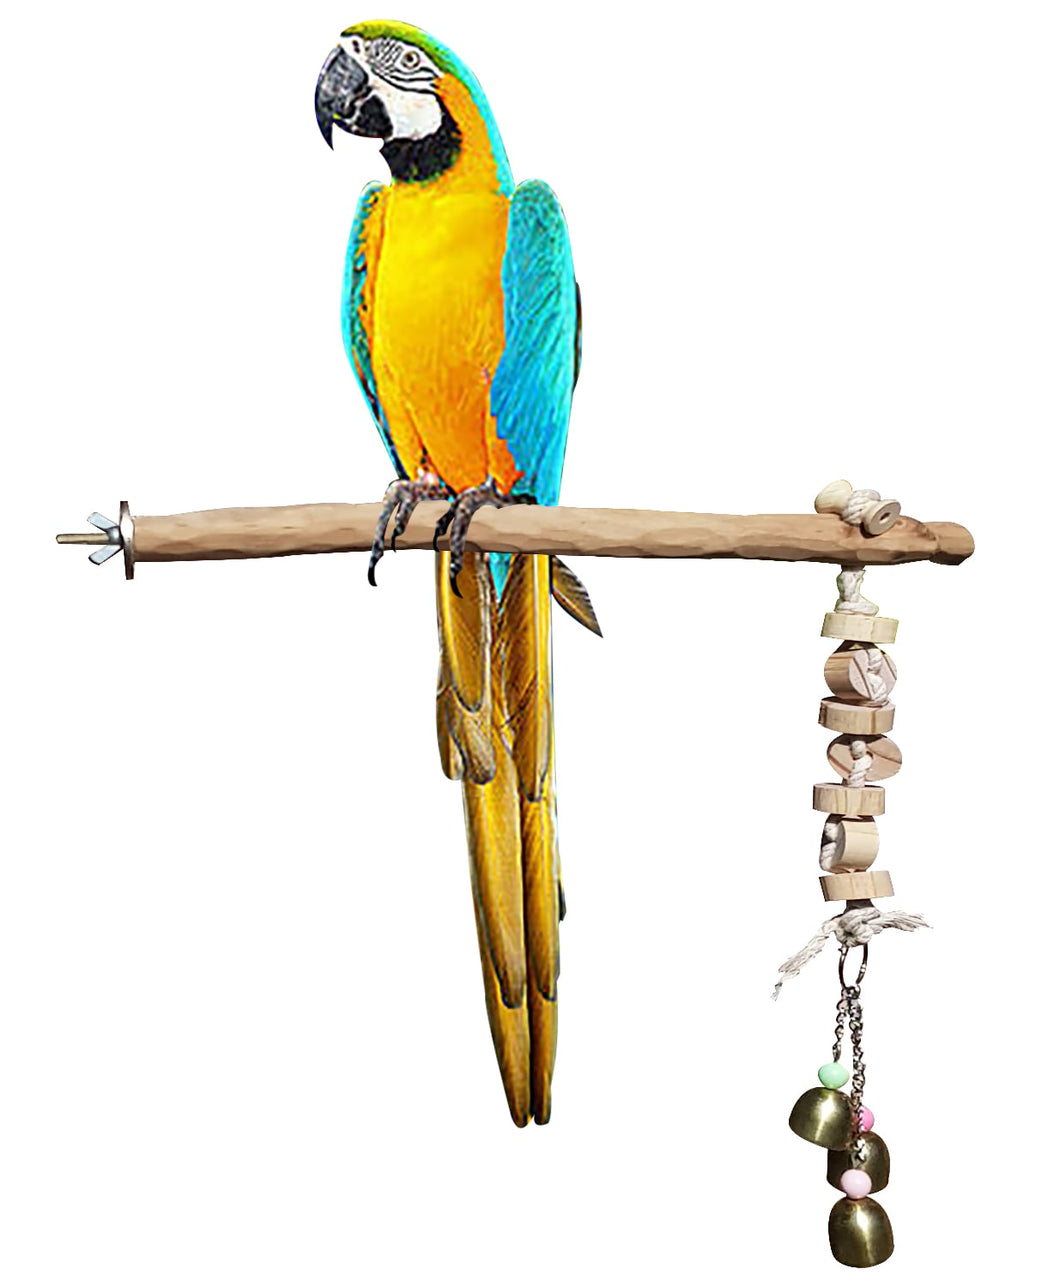 CRAFTMAVEN  HARDWOOD BIRD TOY #1 : LARGE HARDWOOD PLAY ROOST WITH CLIMBING ROPE AND BELLS